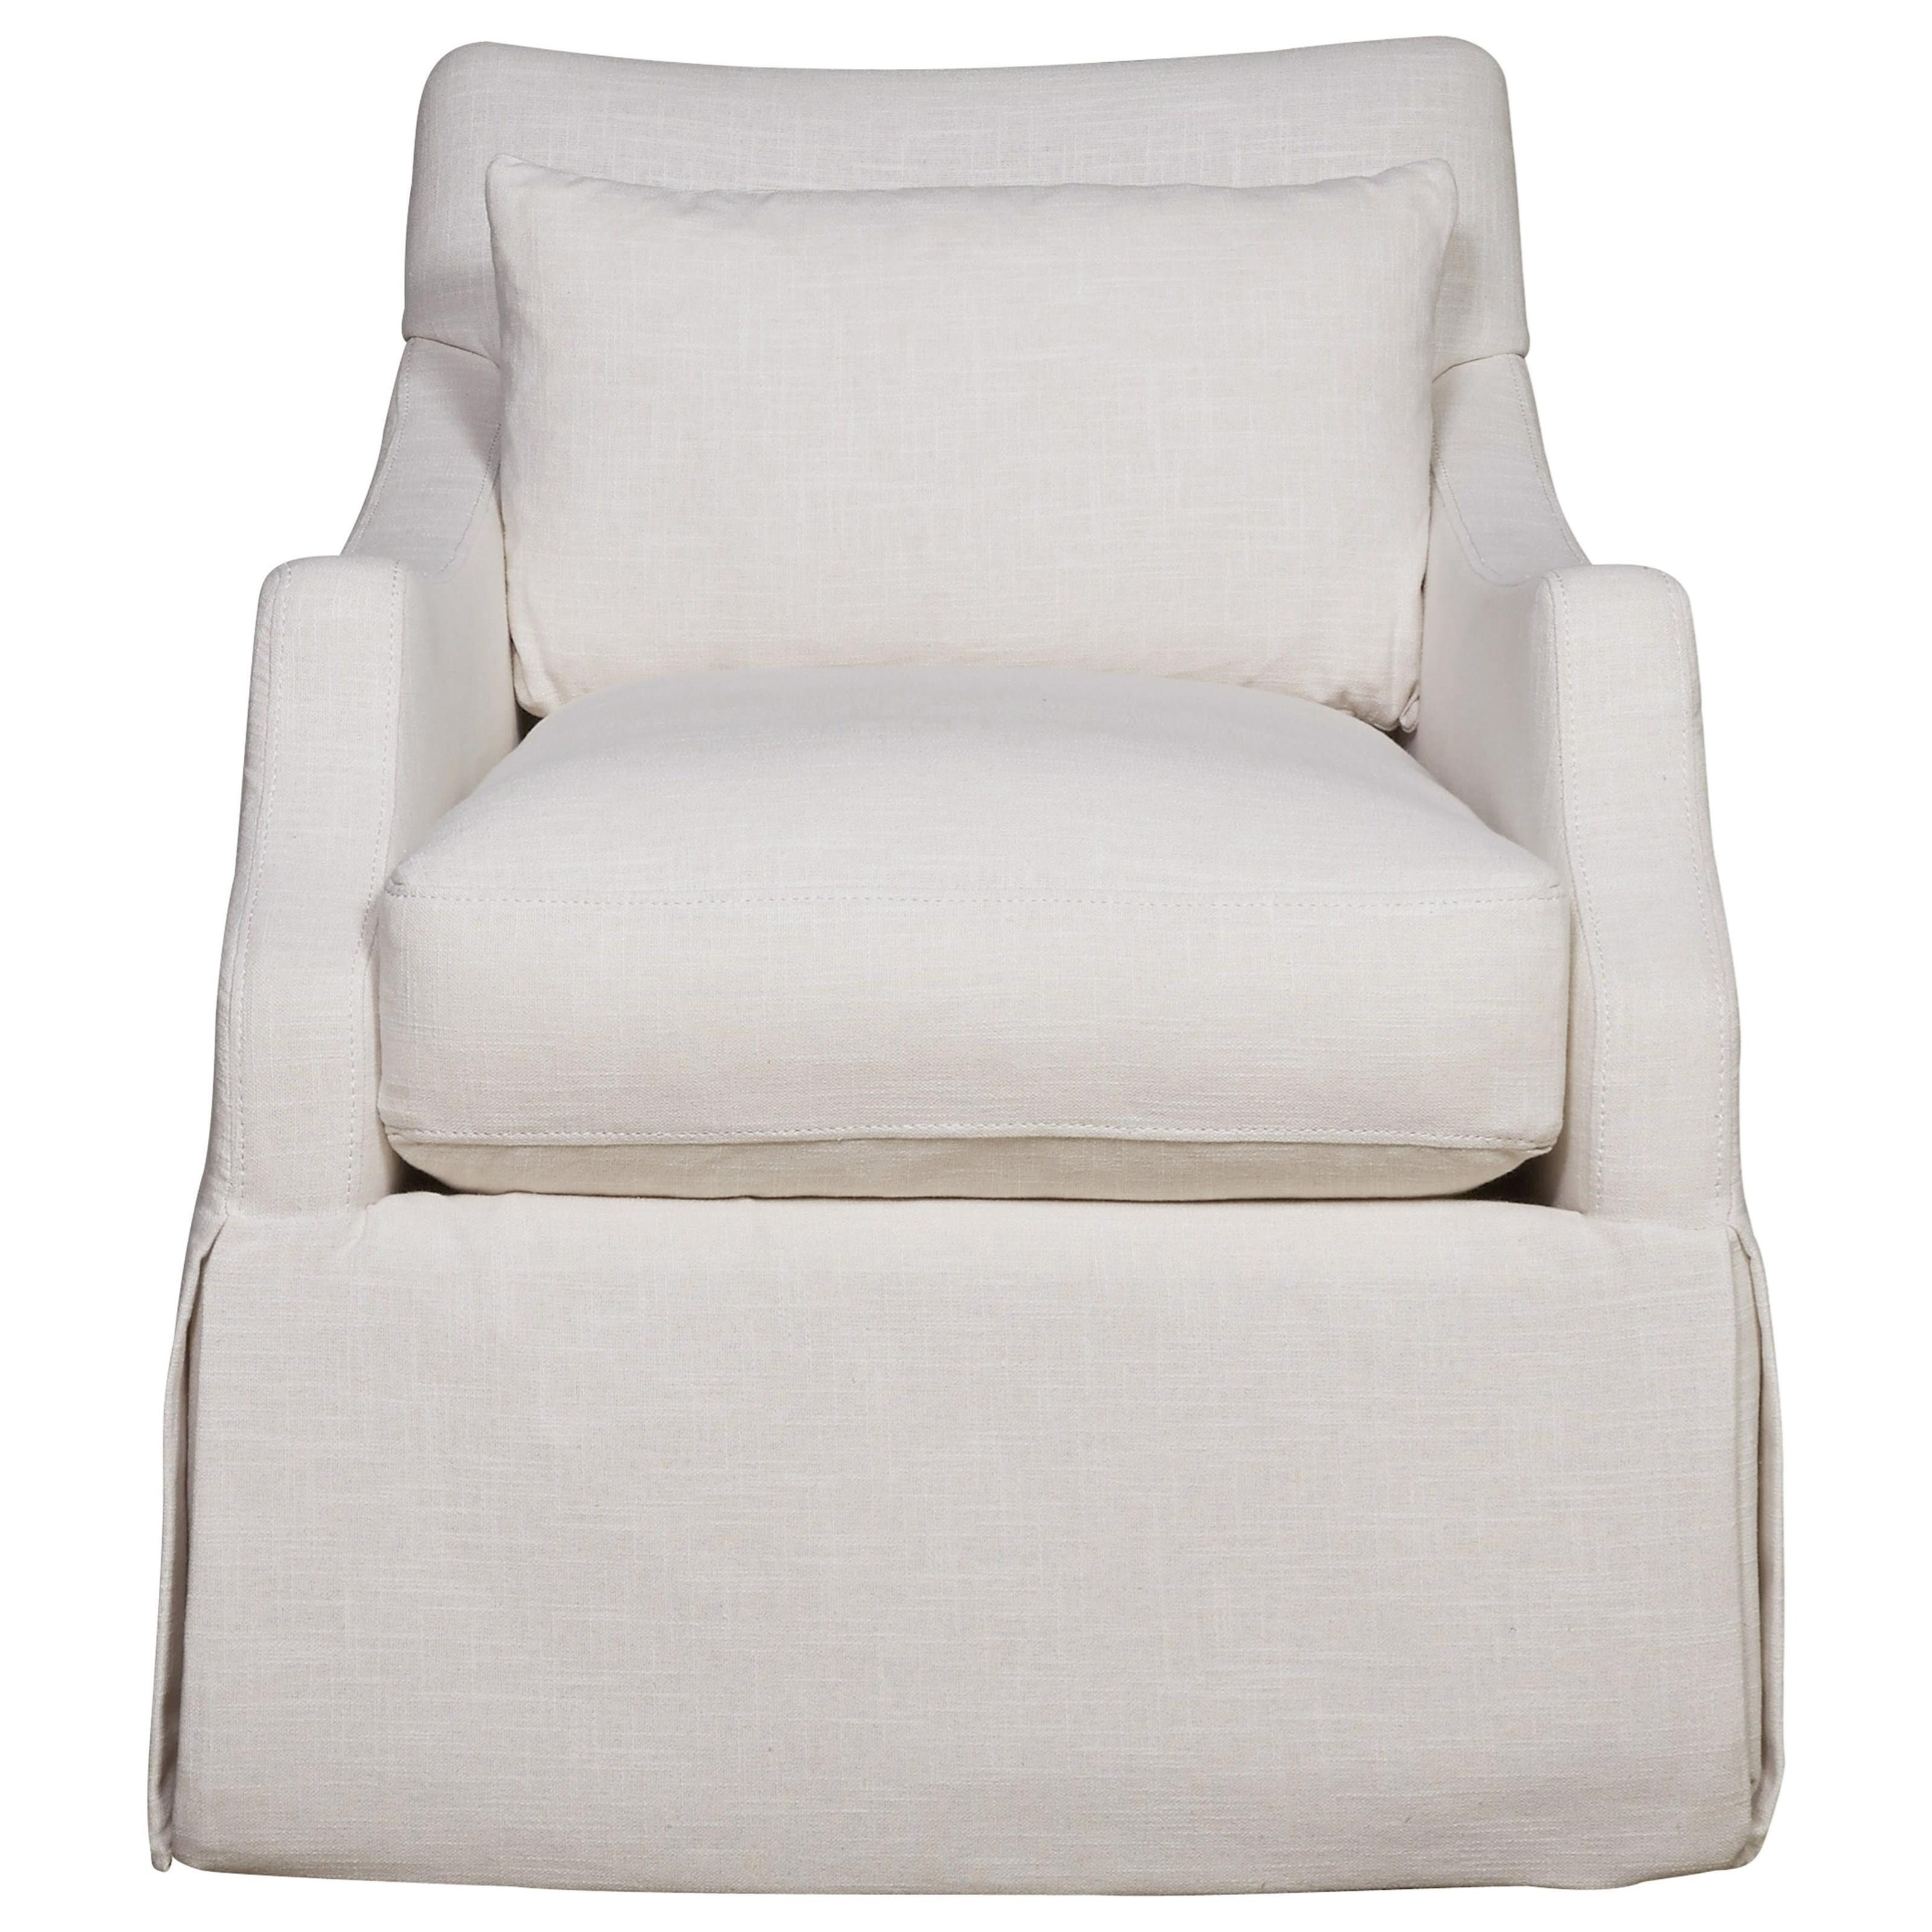 Accents Margaux Accent Chair by Universal at Adcock Furniture